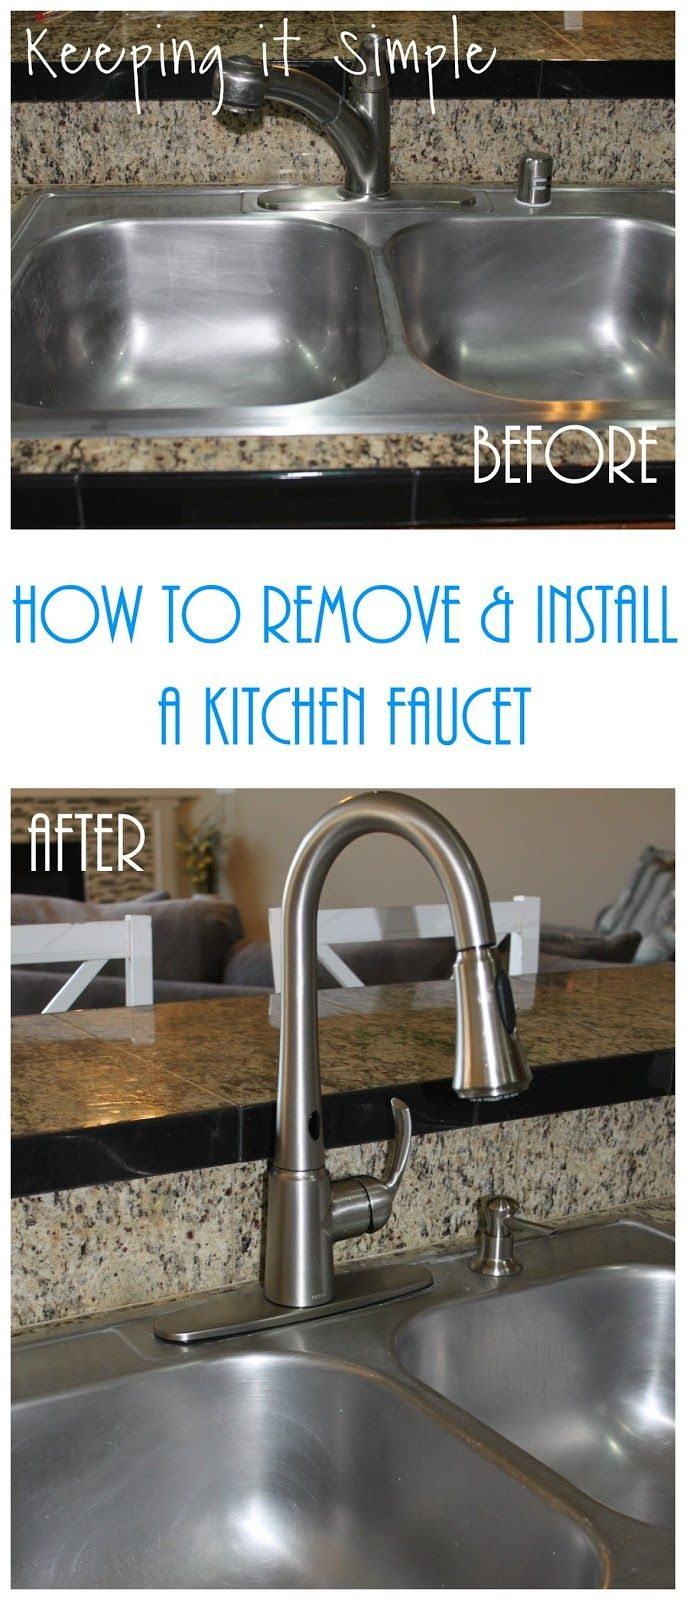 How To Remove And Install A Kitchen Moen Faucet Kitchen Faucet